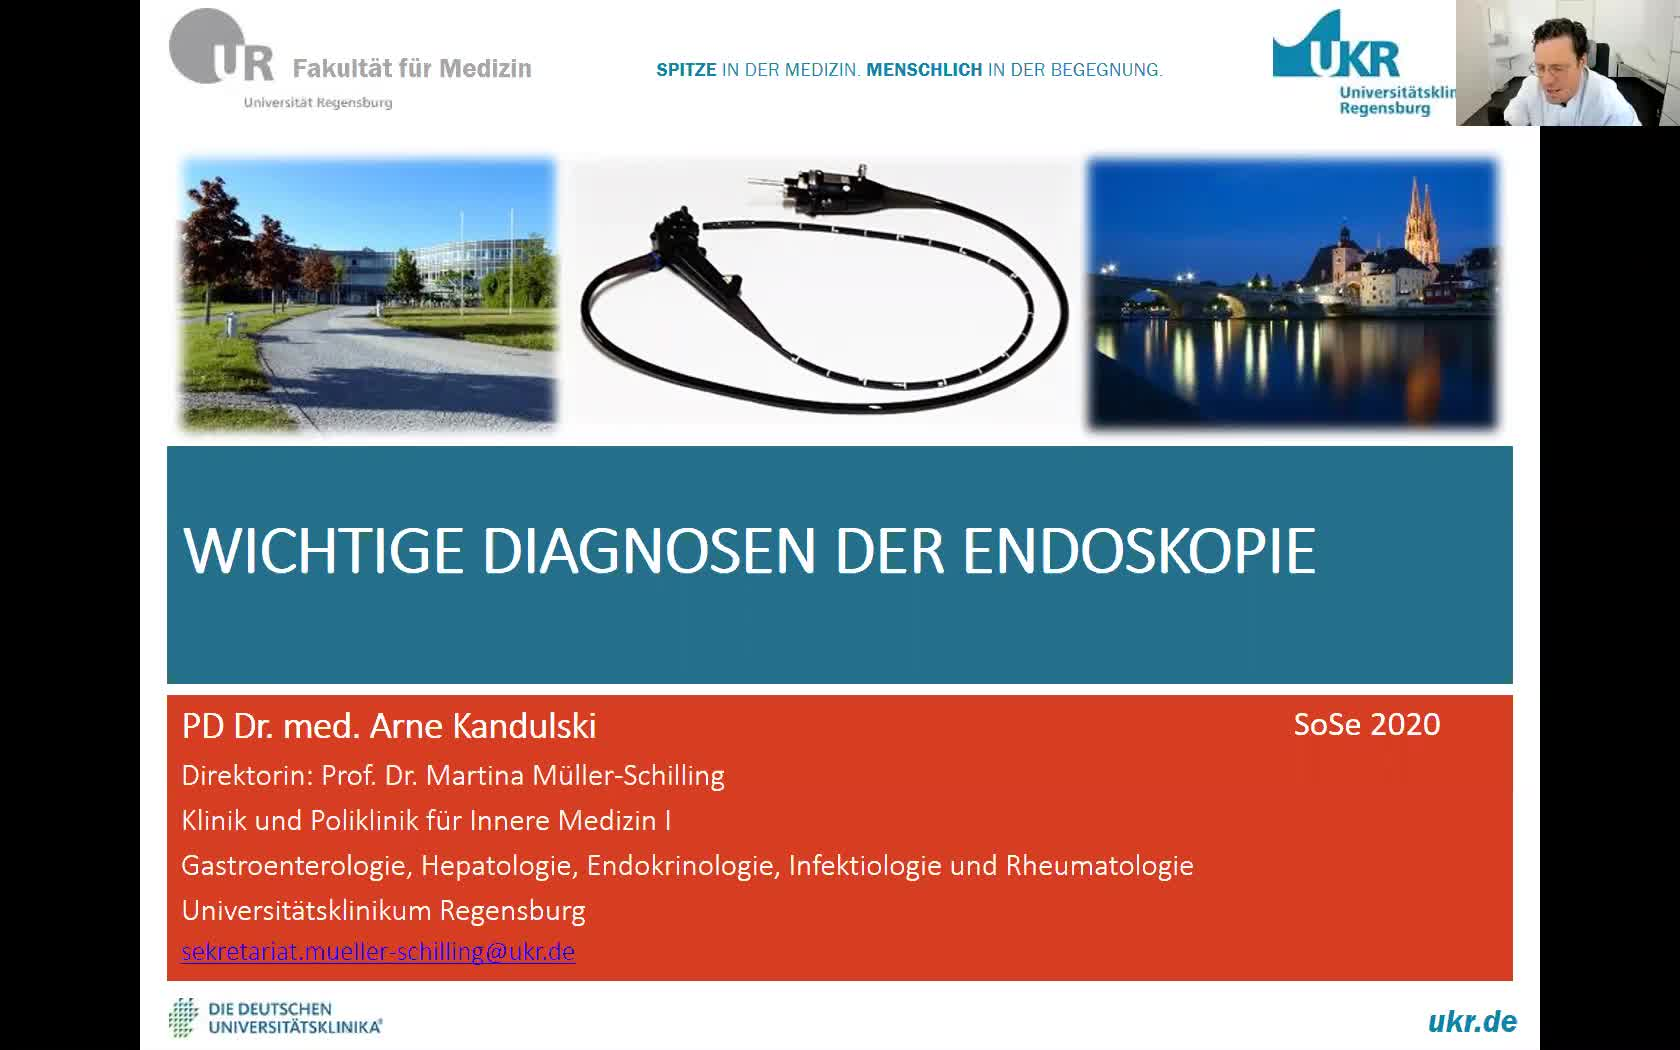 Wichtige Diagnosen der Endoskopie